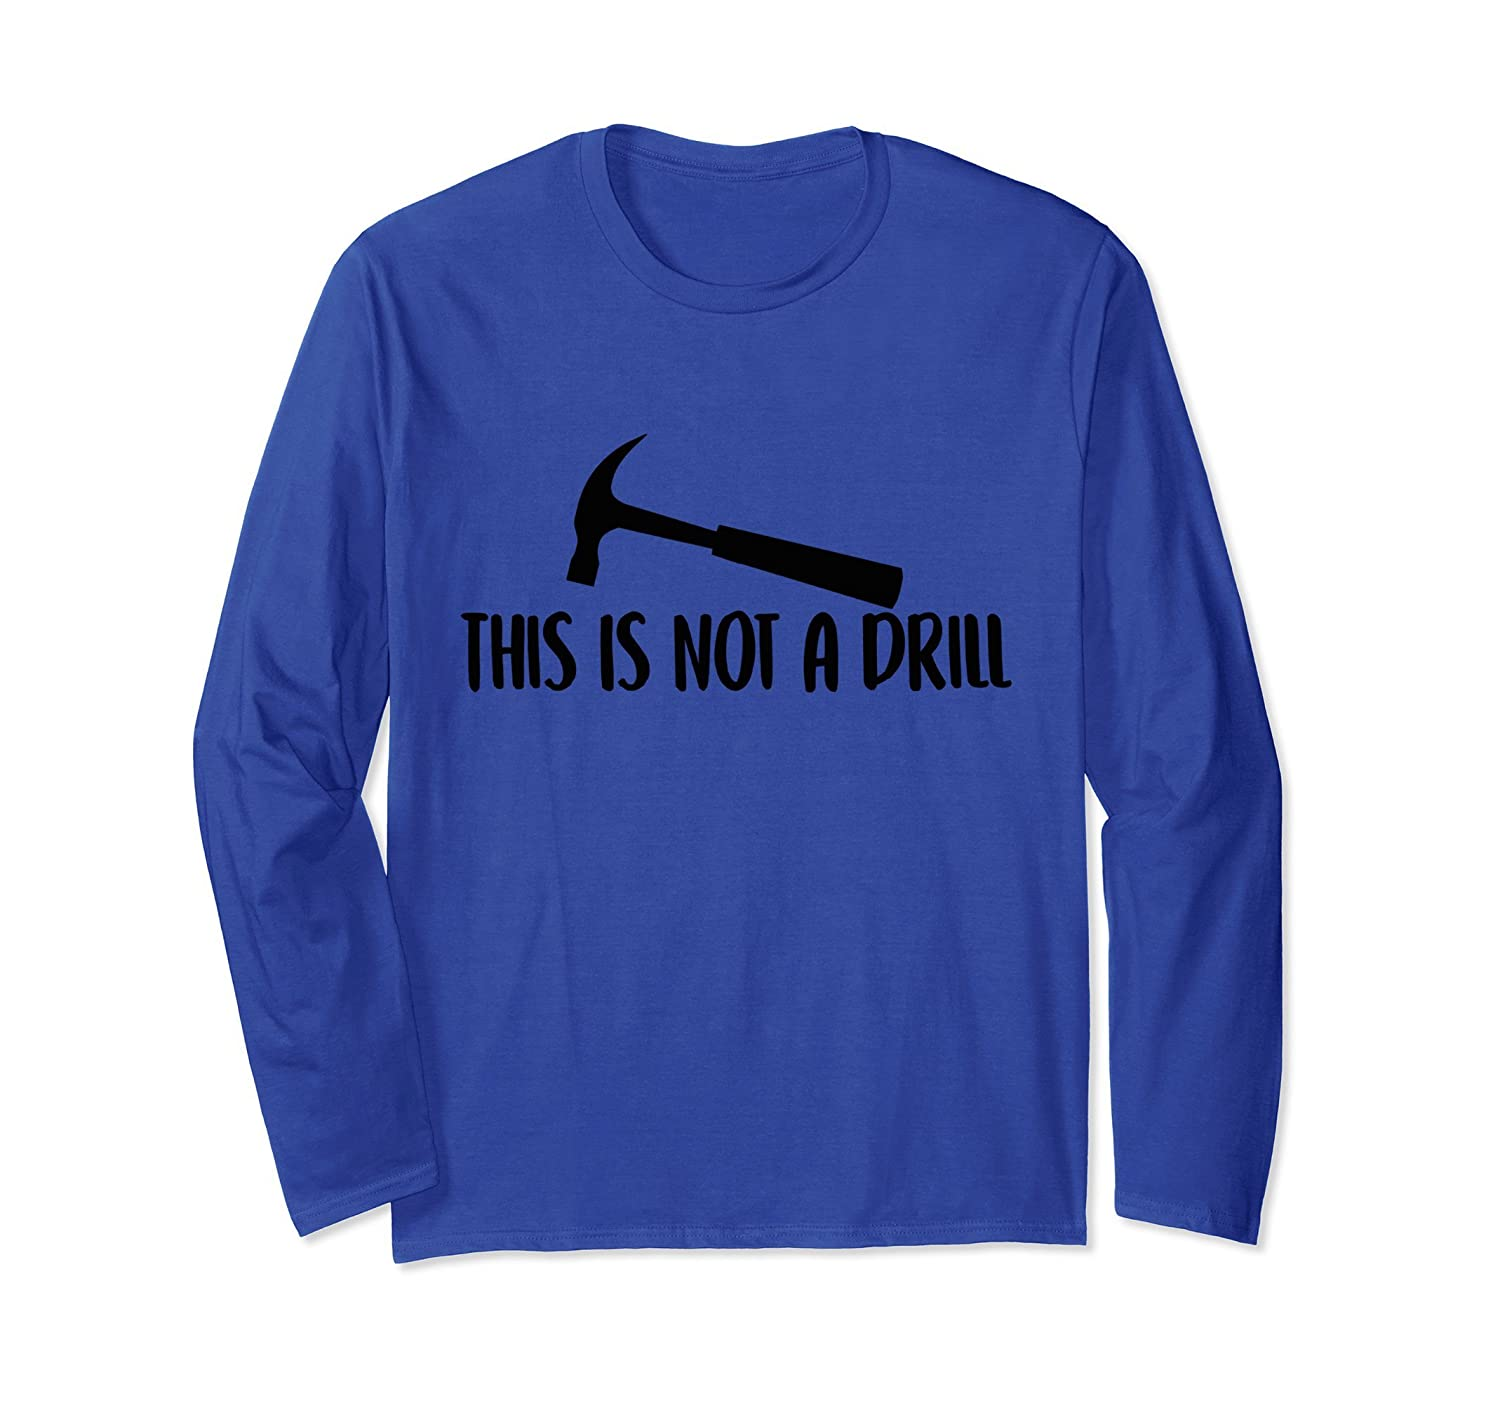 This Is Not A Drill Funny Text Long Sleeve Shirt-TH